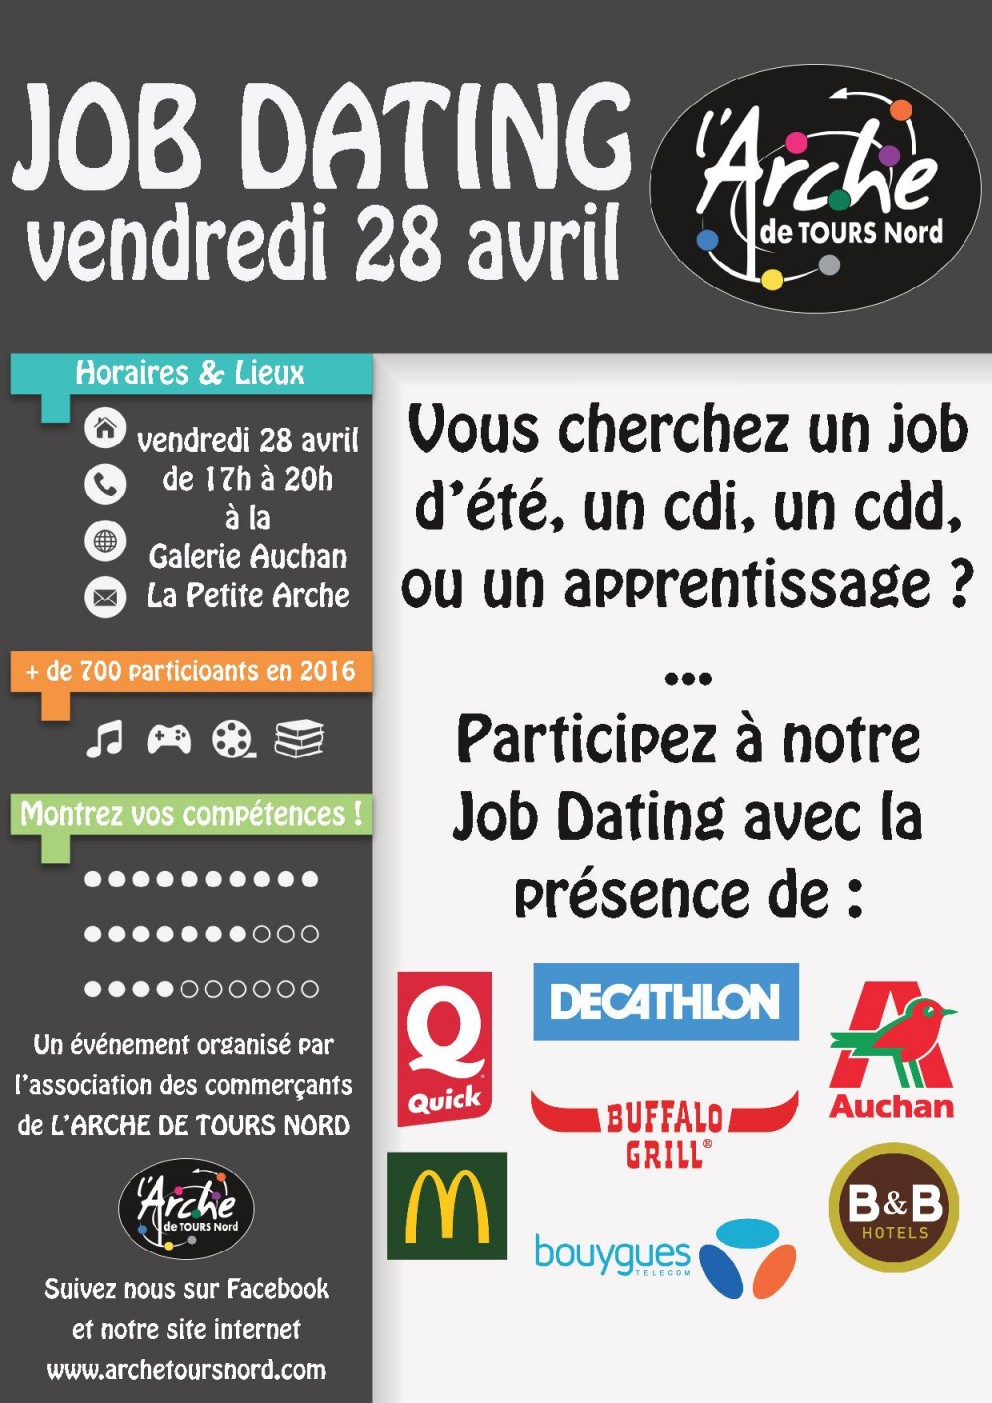 job dating Auchan Tours Nord